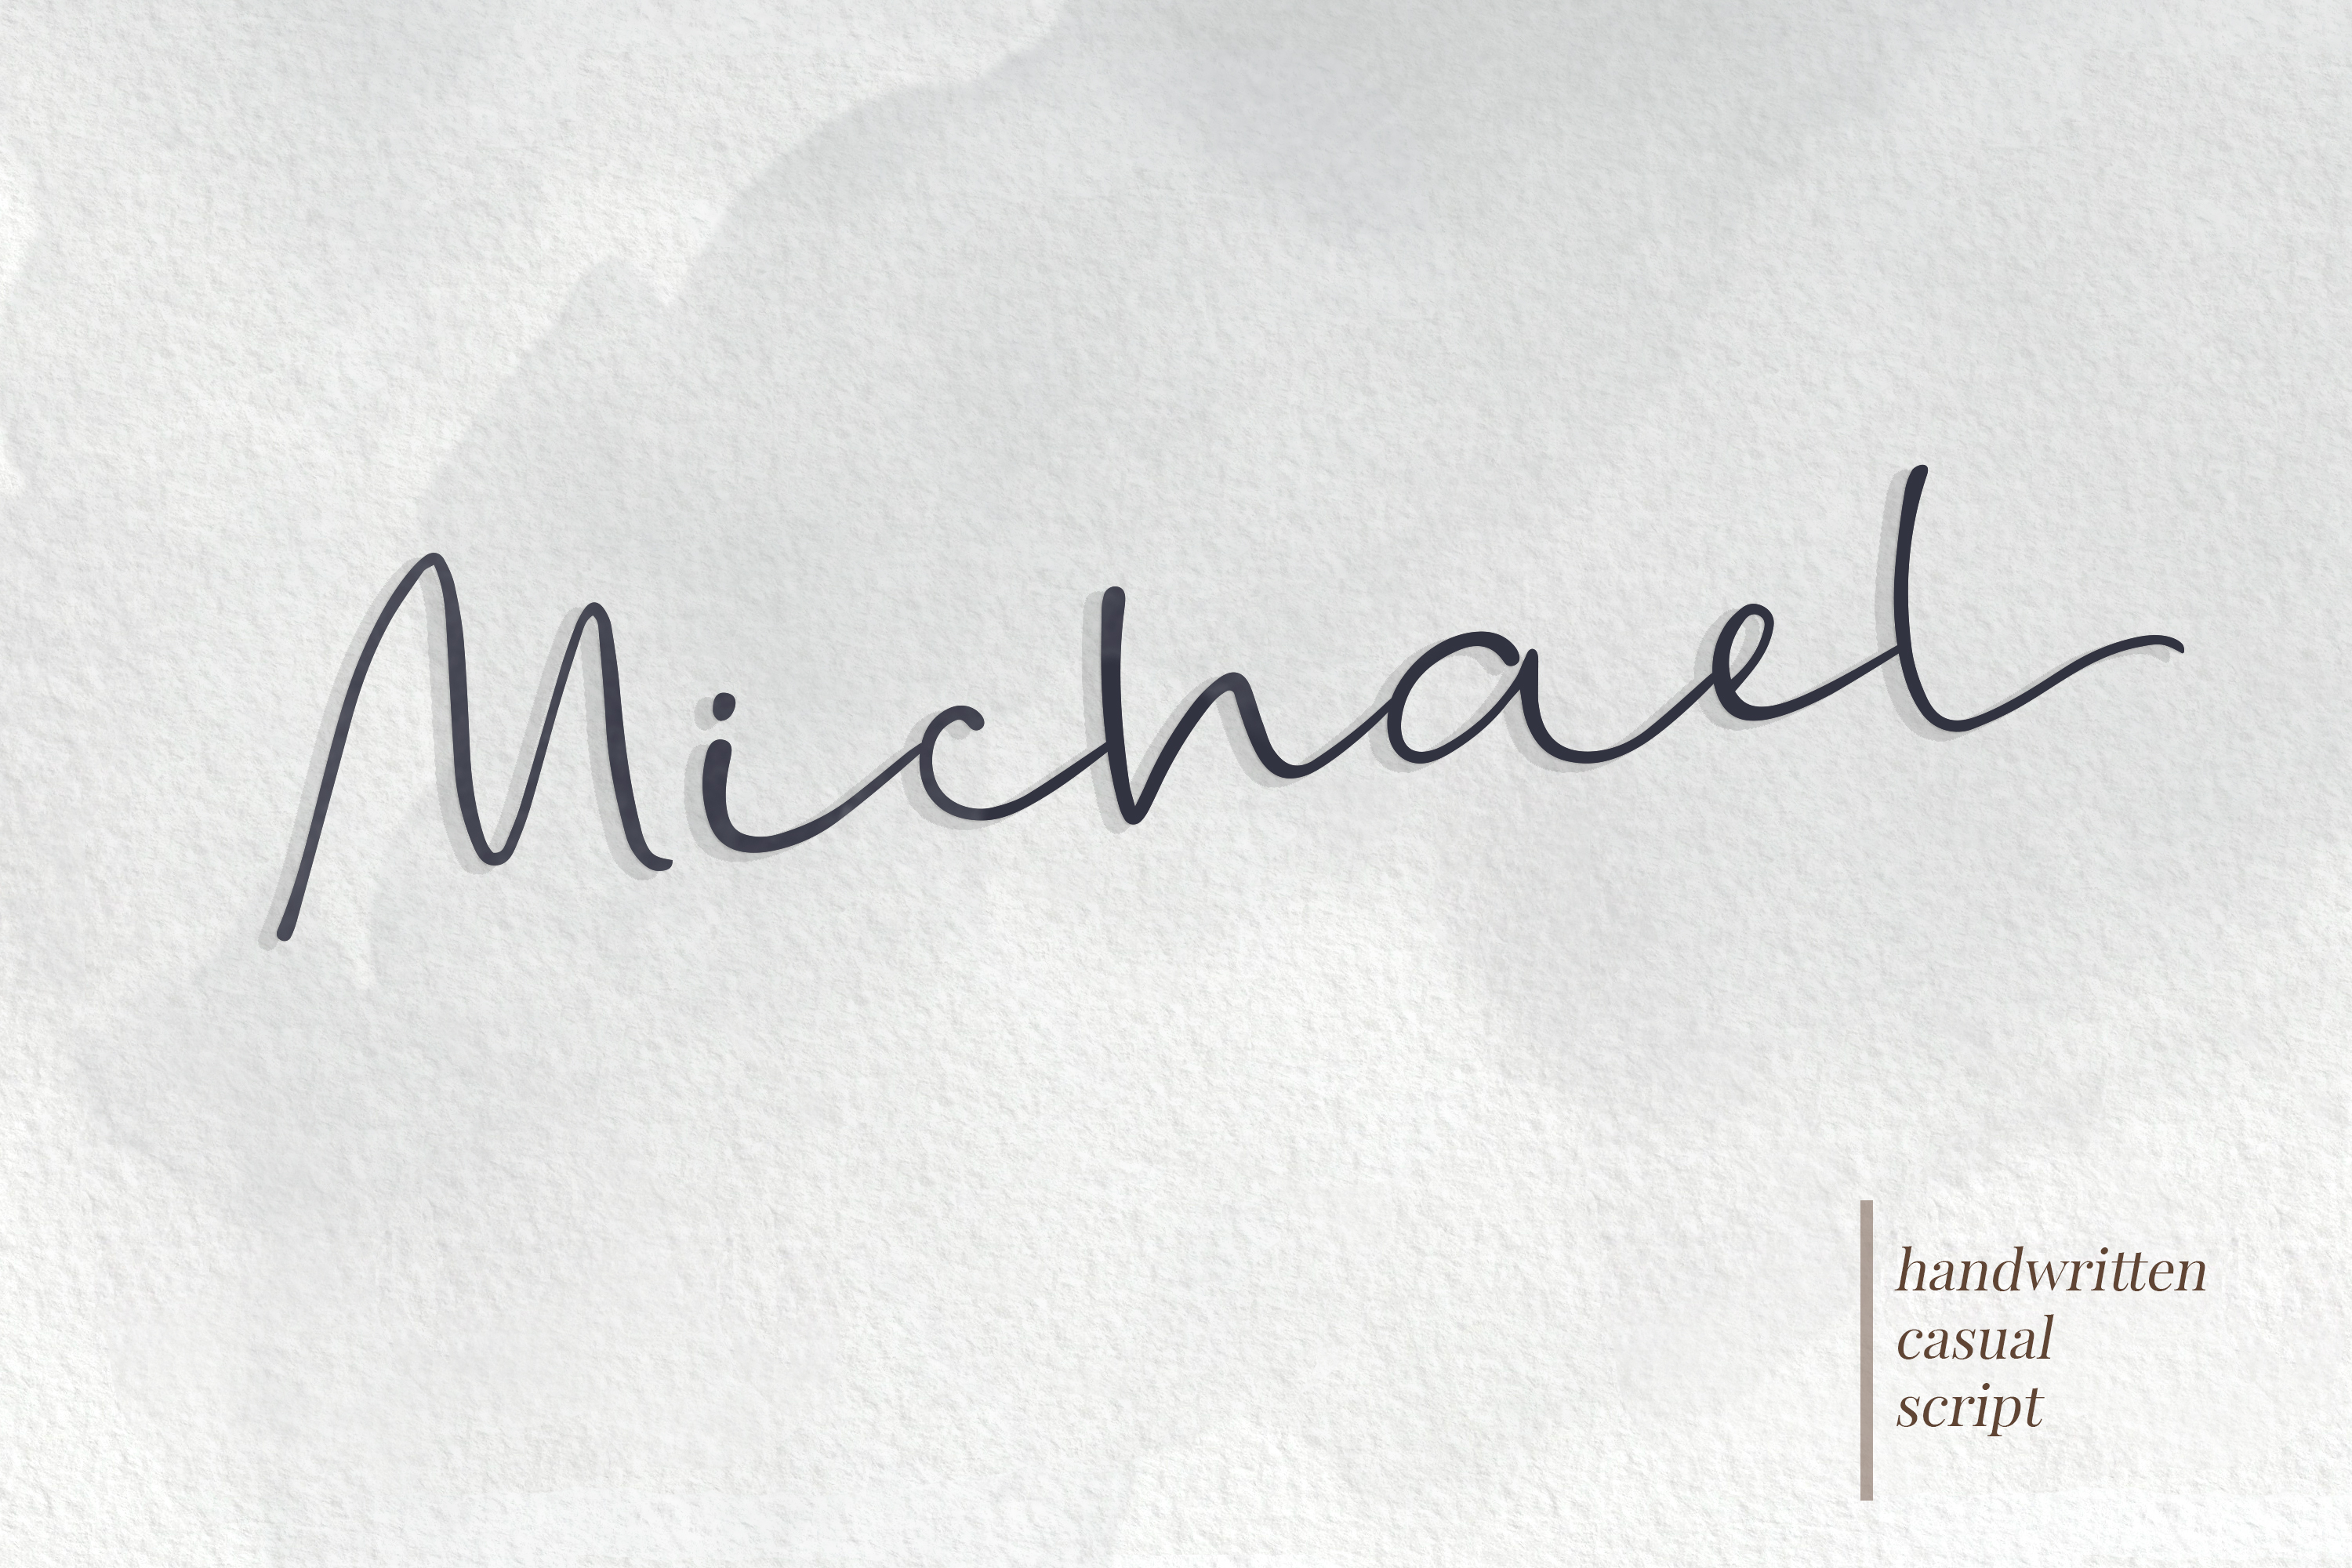 Michael - a casual handwritten script example image 1